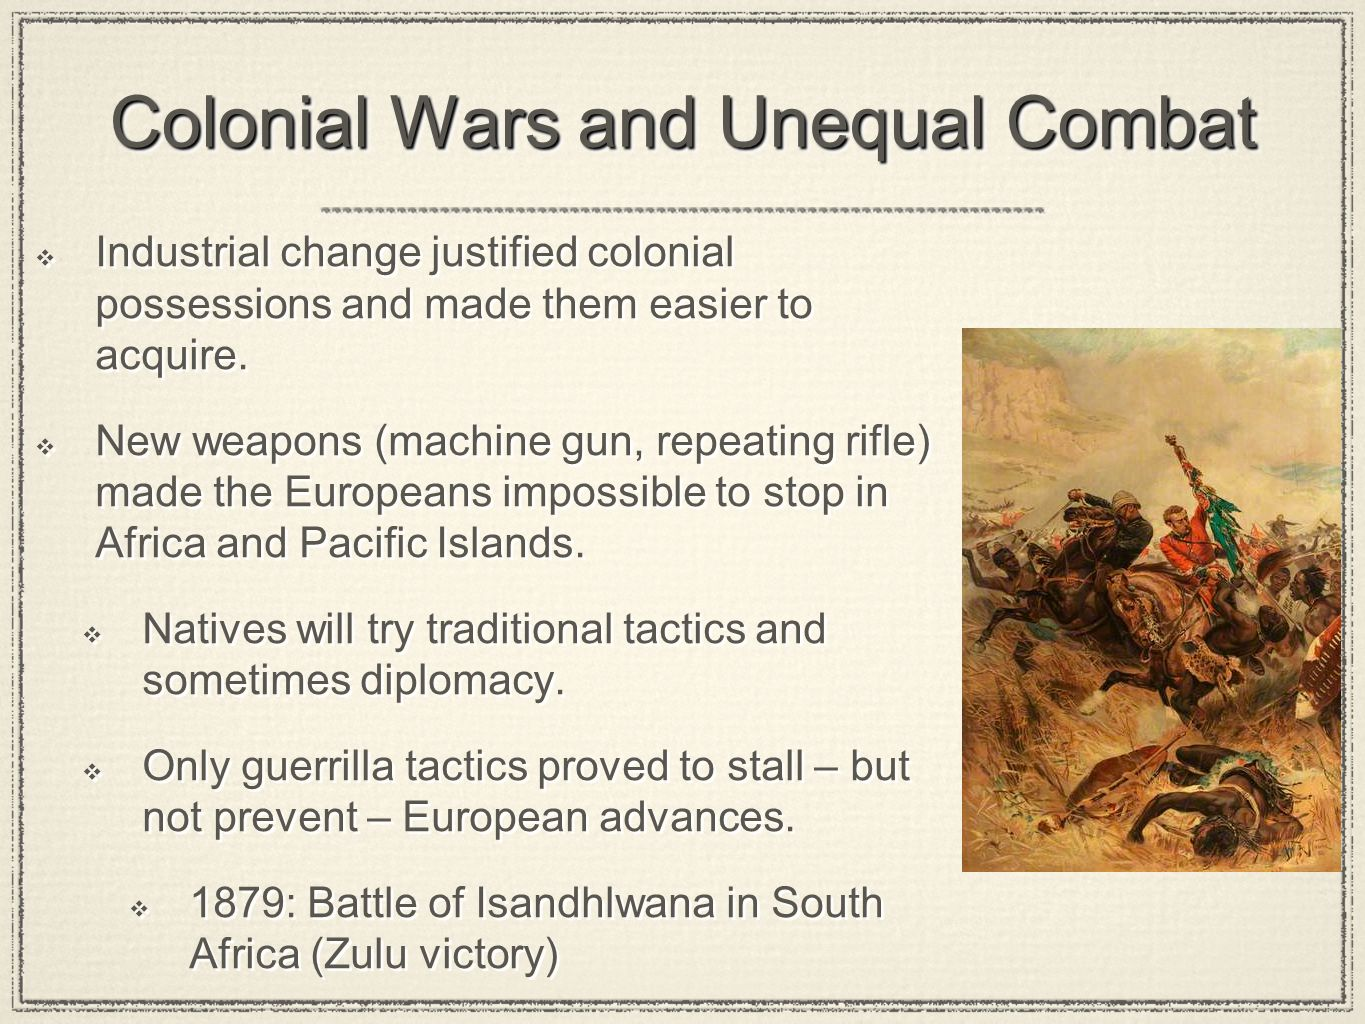 Colonial Wars and Unequal Combat